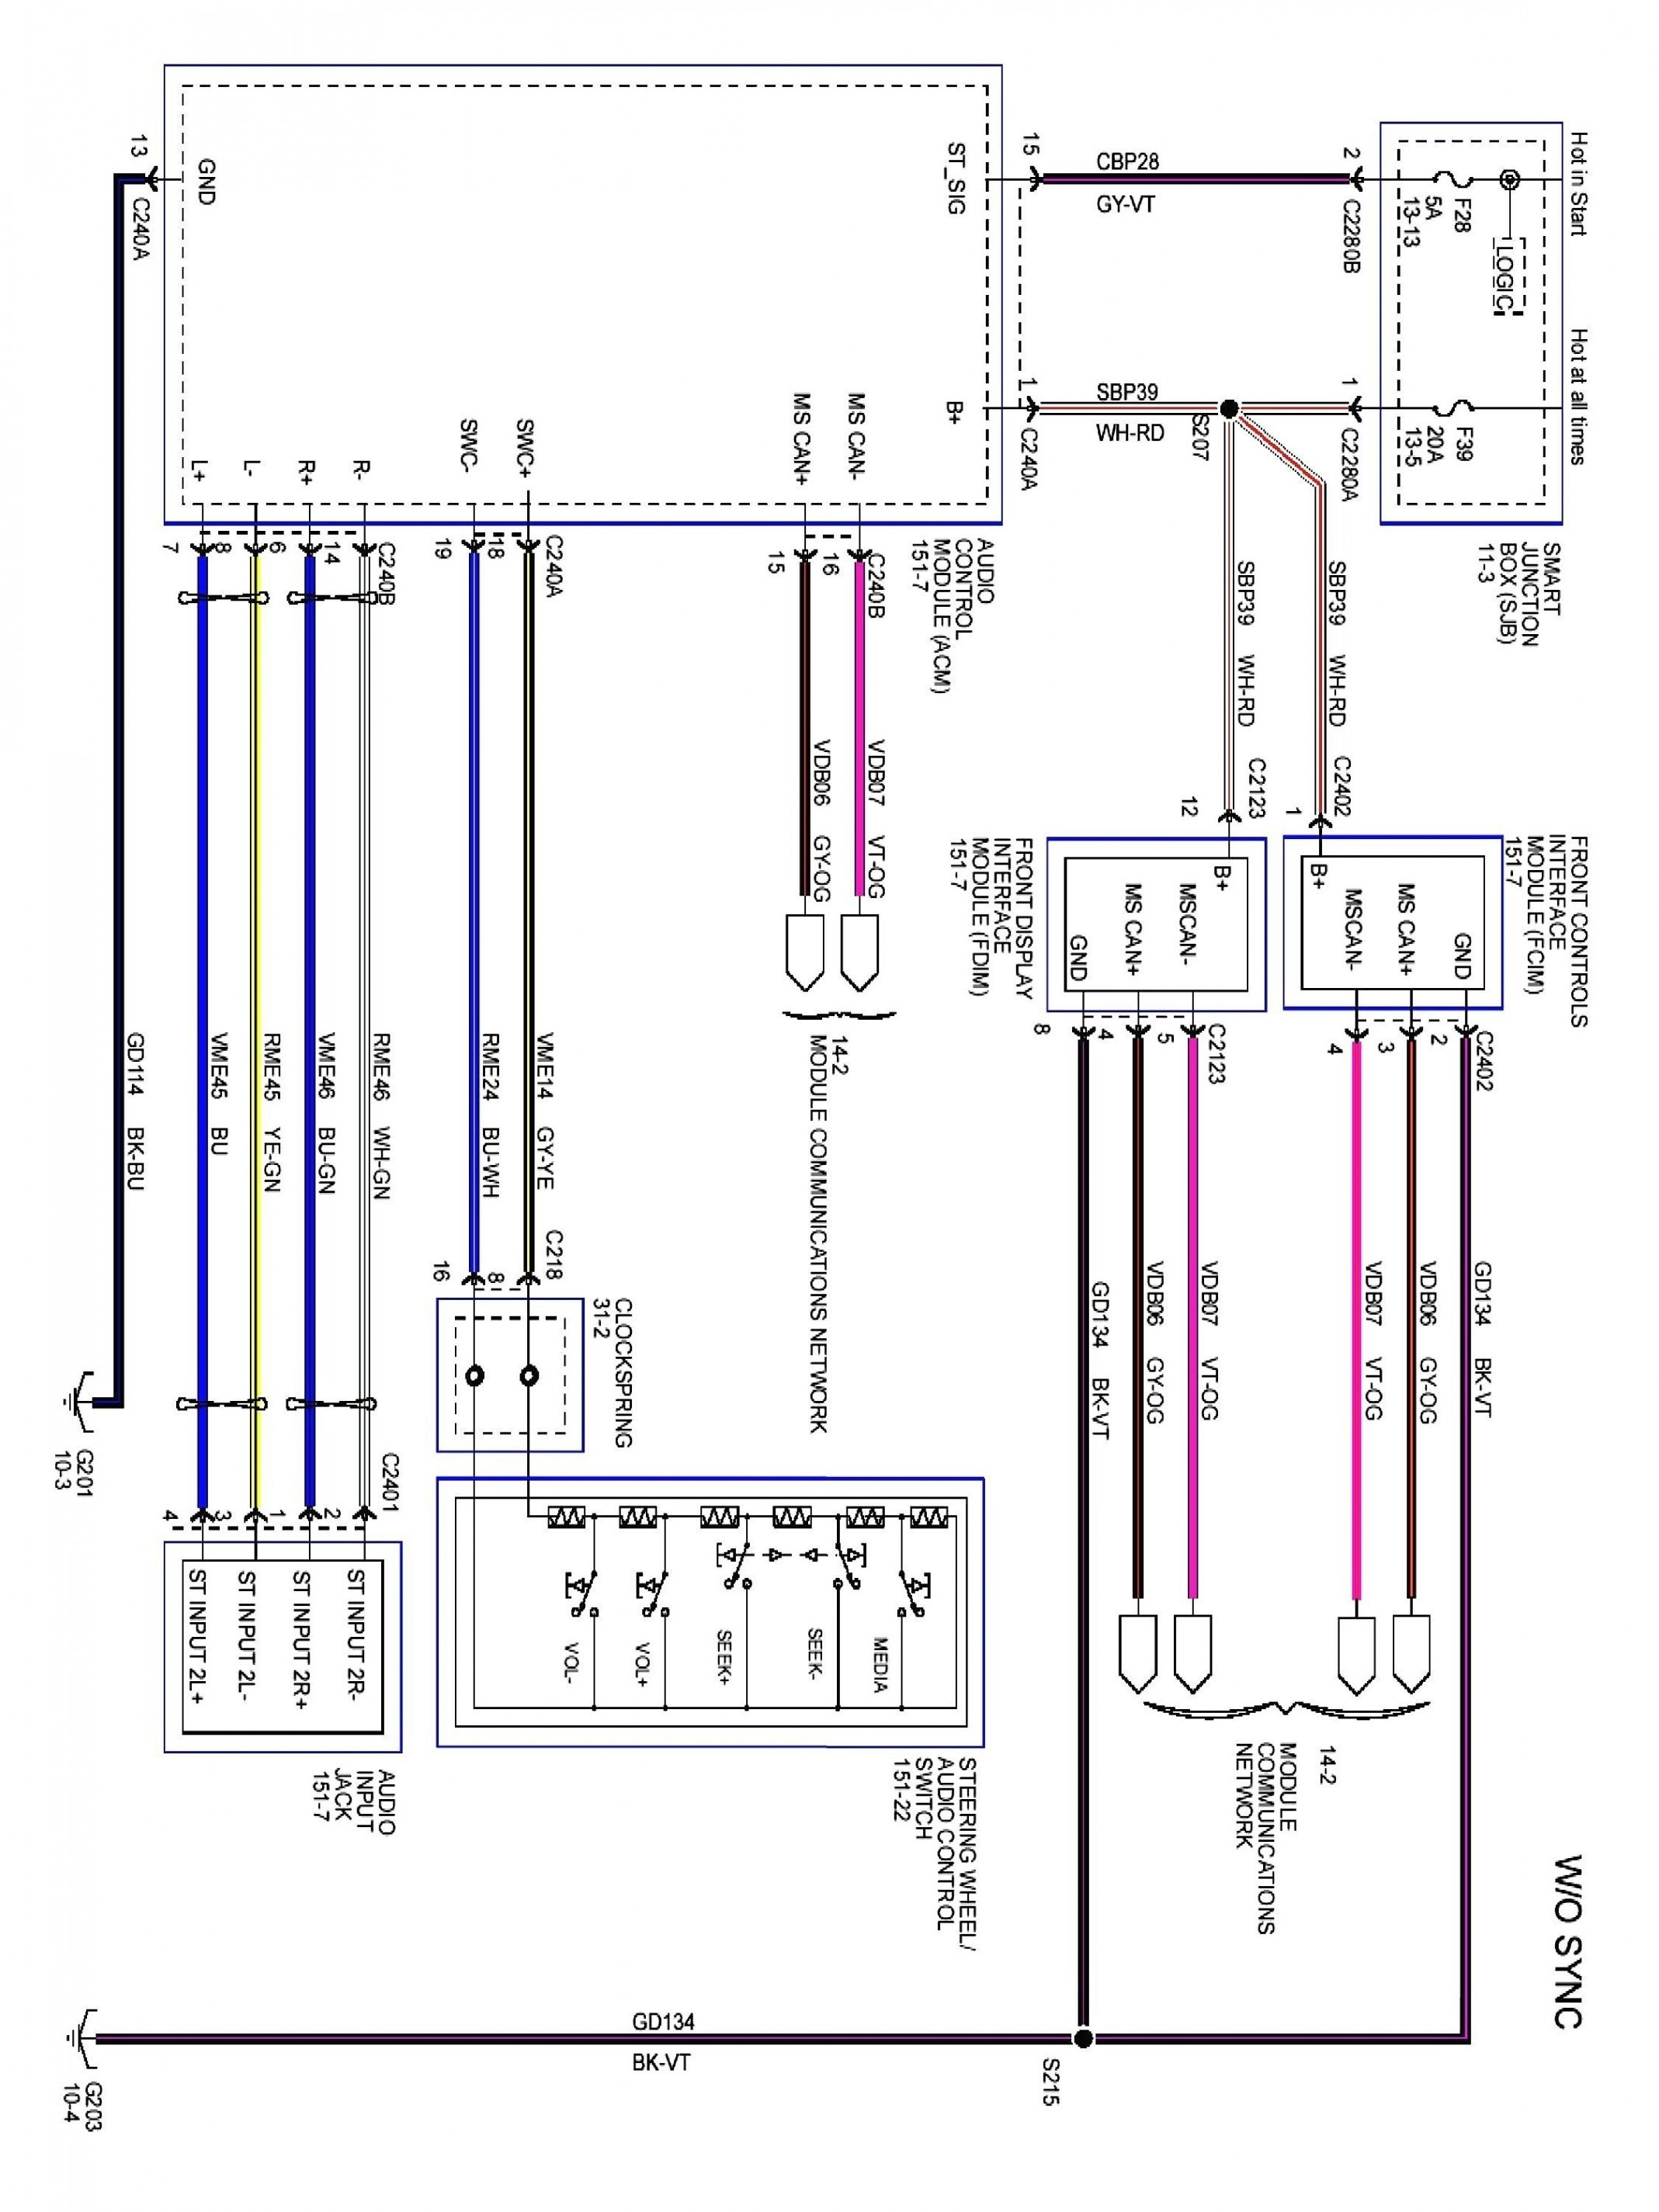 Hybrid Engine Diagram 2004 Bmw X3 Engine Diagram Worksheet and Wiring Diagram • Of Hybrid Engine Diagram Hybrid Auto Informations